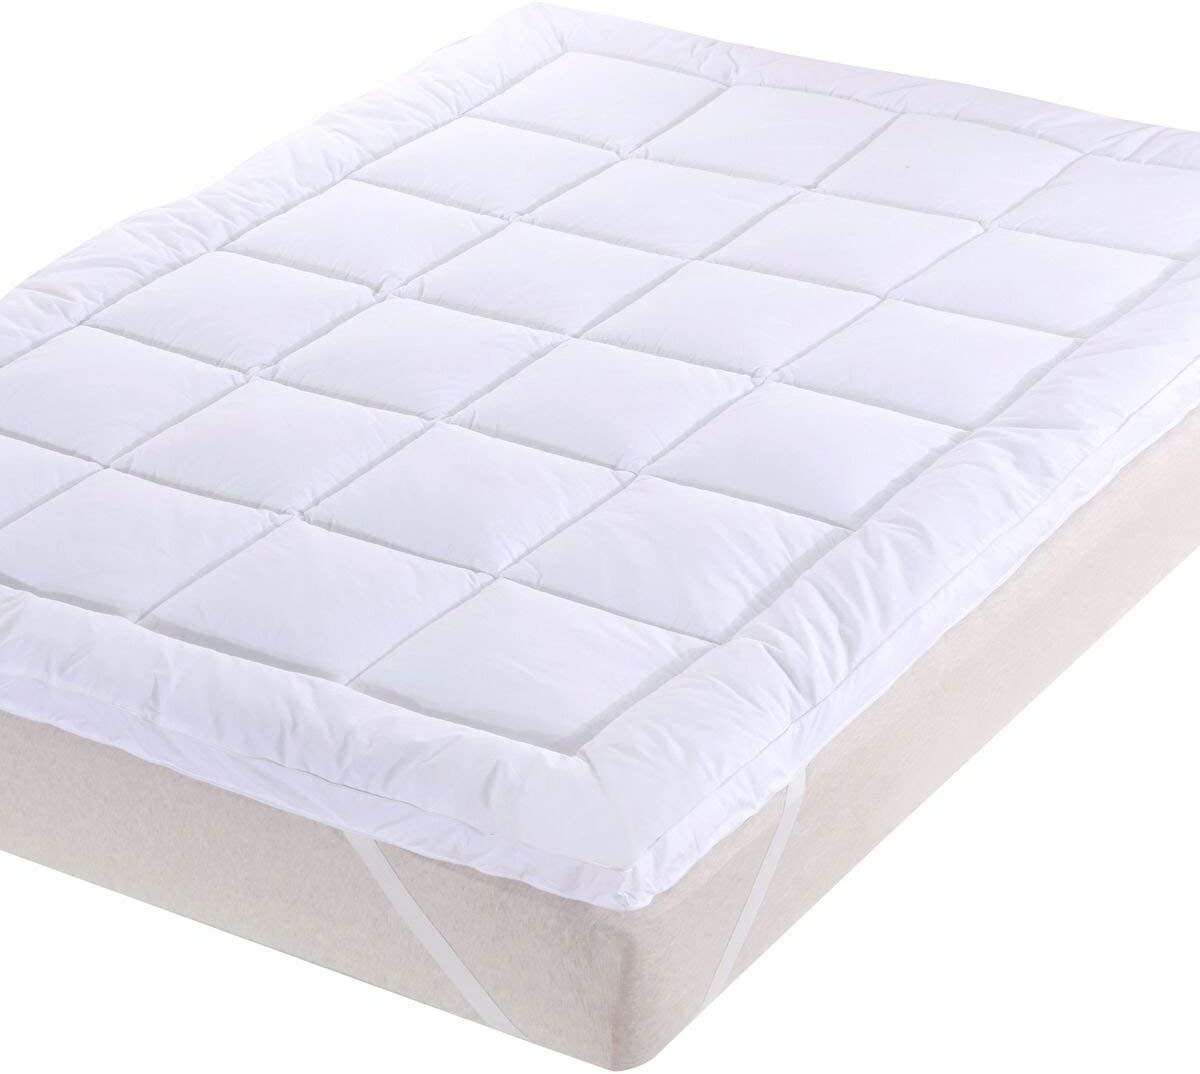 Royal Hotel Abripedic Plush Cotton Mattress Topper, King, 2 Inches Hypoallergenic Overfilled Down Alternative Anchor Bands Mattress Topper